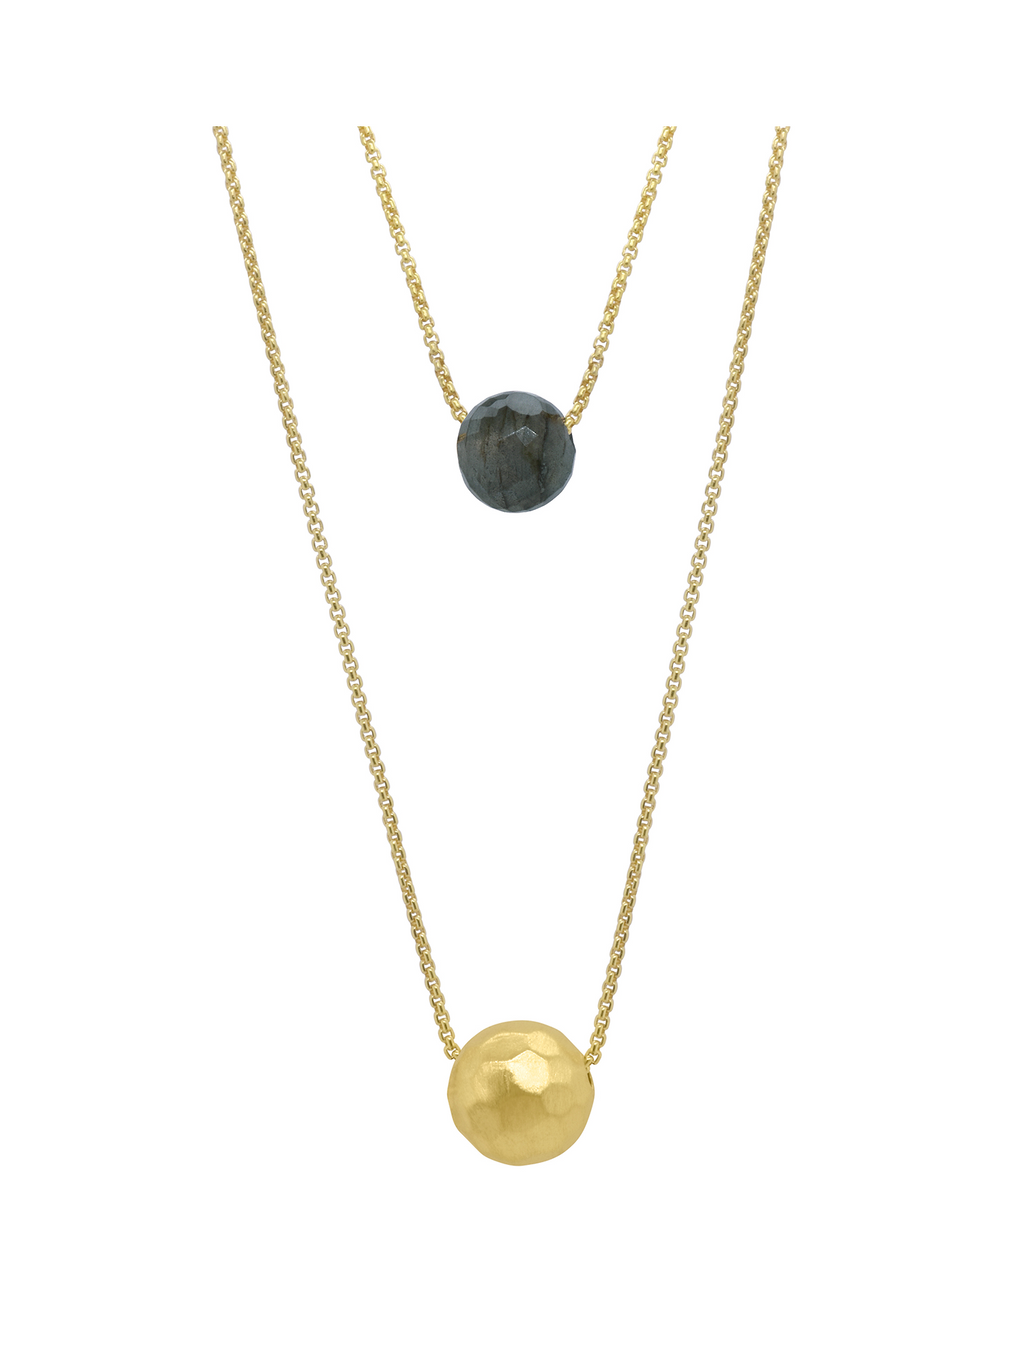 Dean Davidson Manhattan Layered Necklace